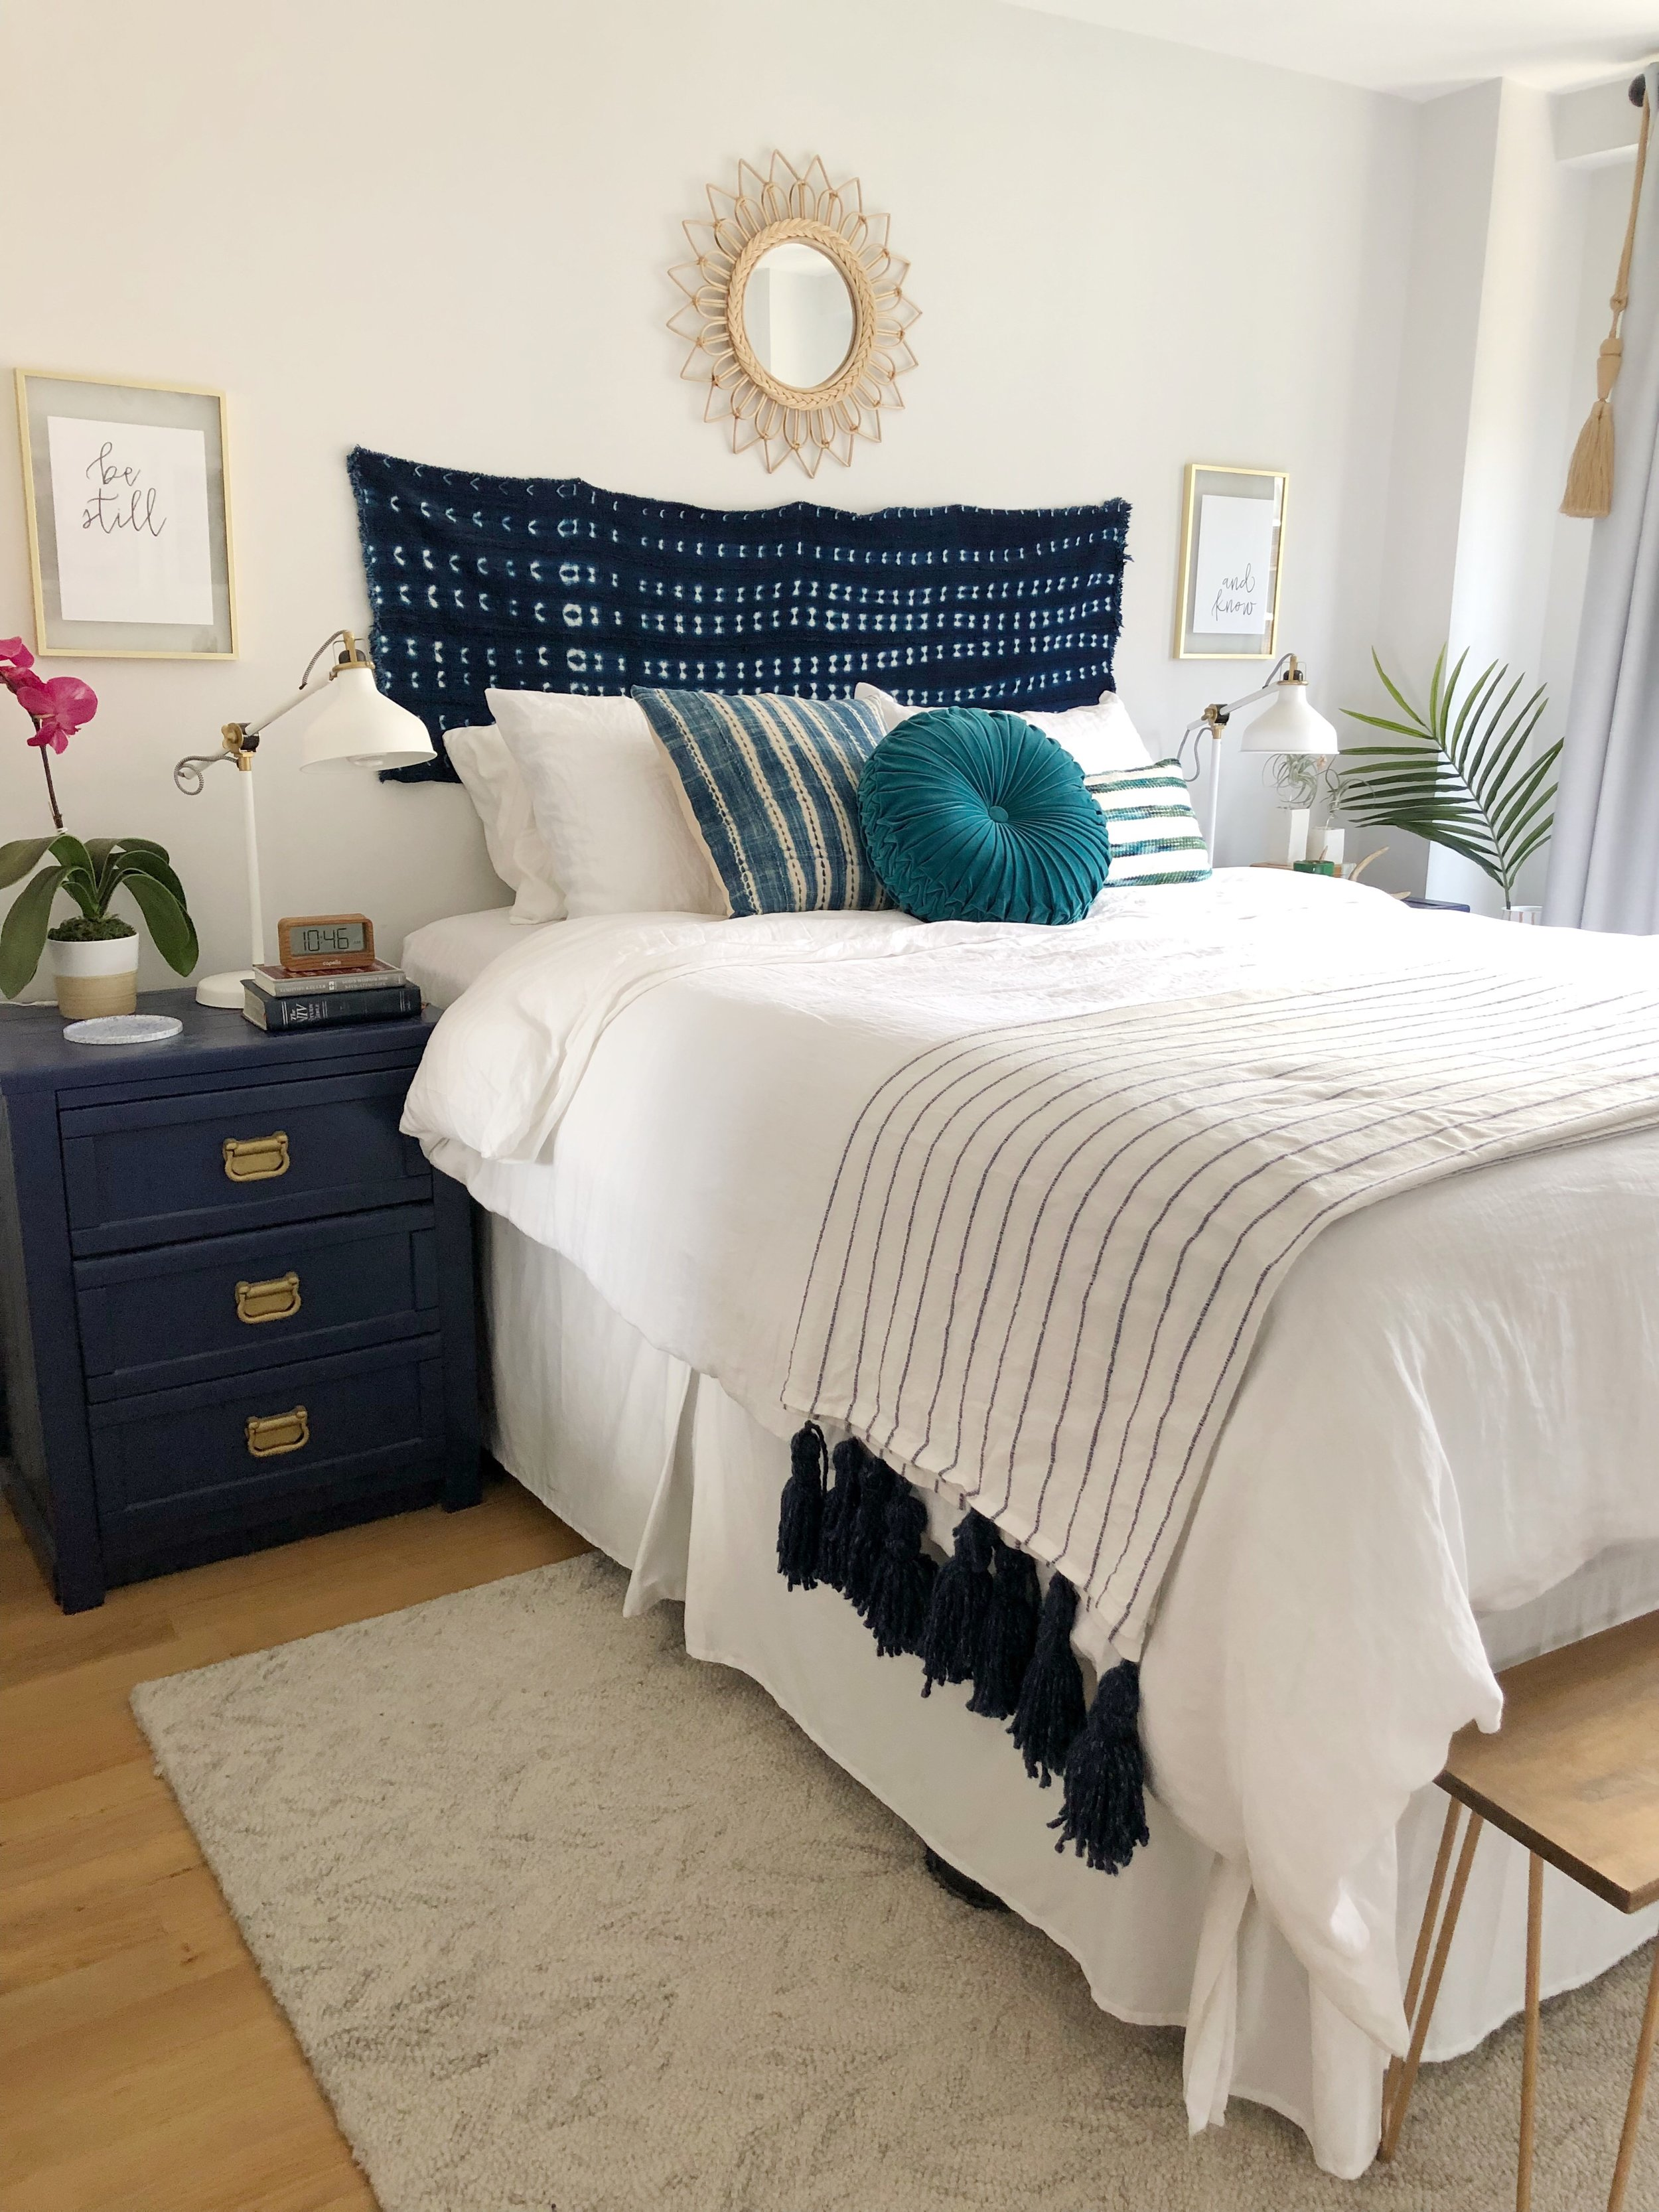 Our bedroom is just big enough for our bed and nightstands but as with all of the rooms in our home, there are the touches of blue!